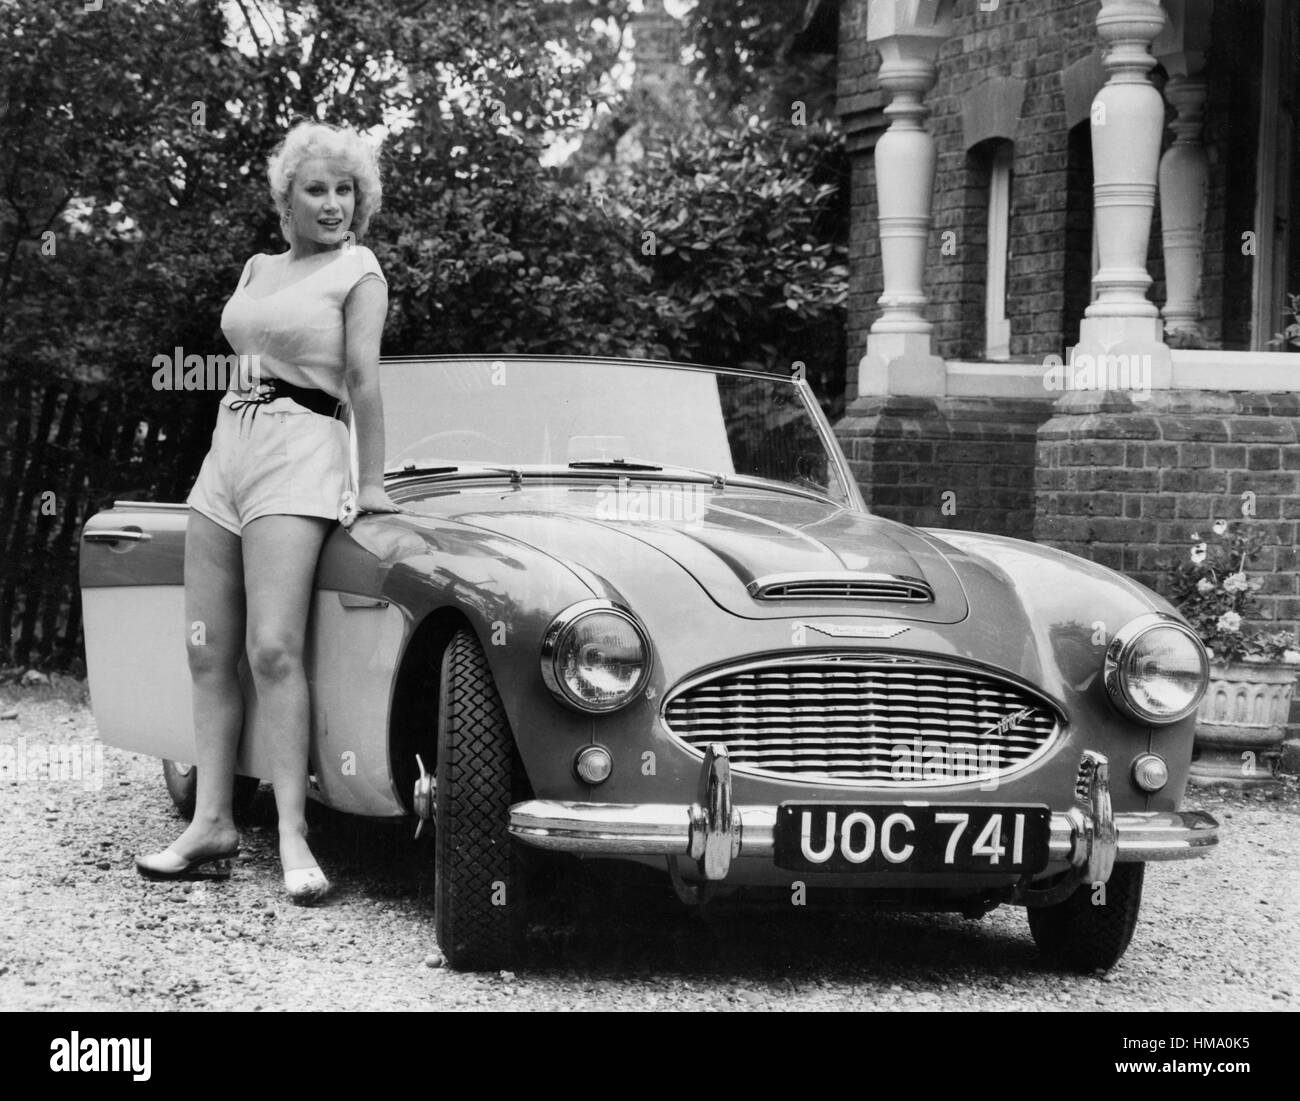 1957 Austin - Healey 100-6 - Stock Image